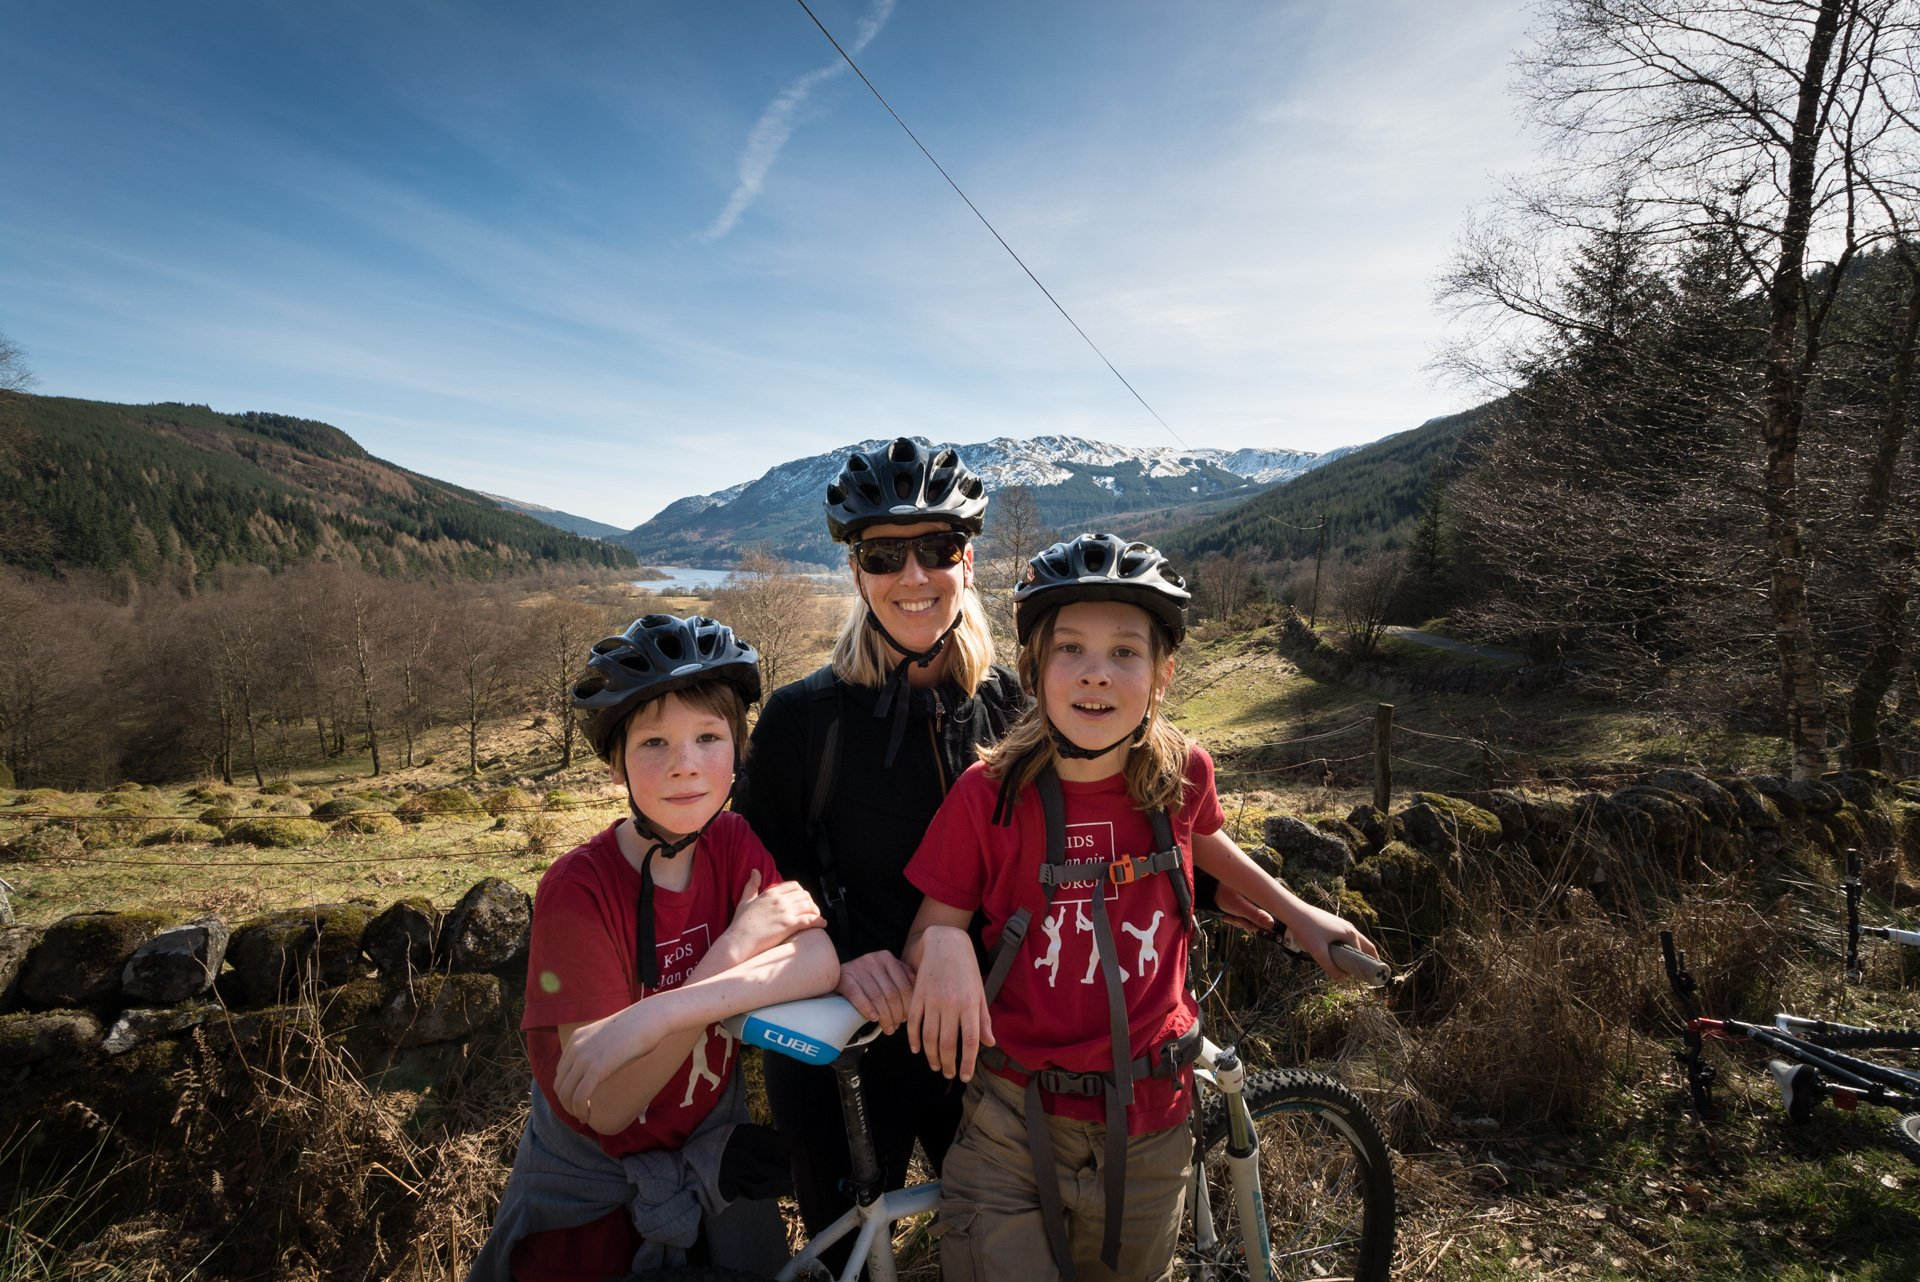 Easy family bikes rides in England and Scotland includes the ride along Loch Lubnaig near Callander in Scotland